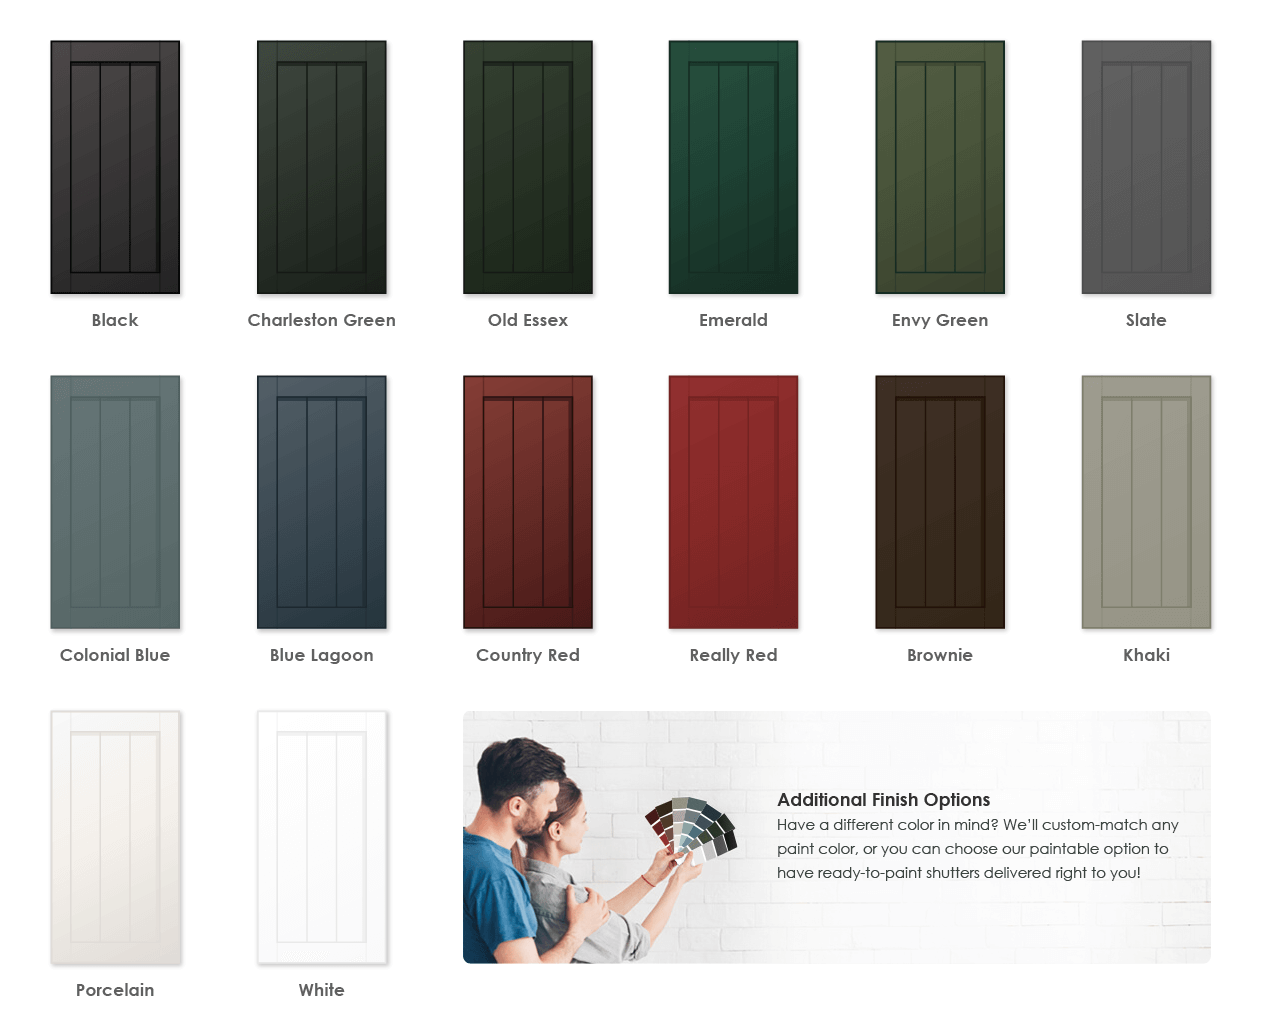 Adorned Openings offers a variety of wonderful paint color options for framed board and batten shutters